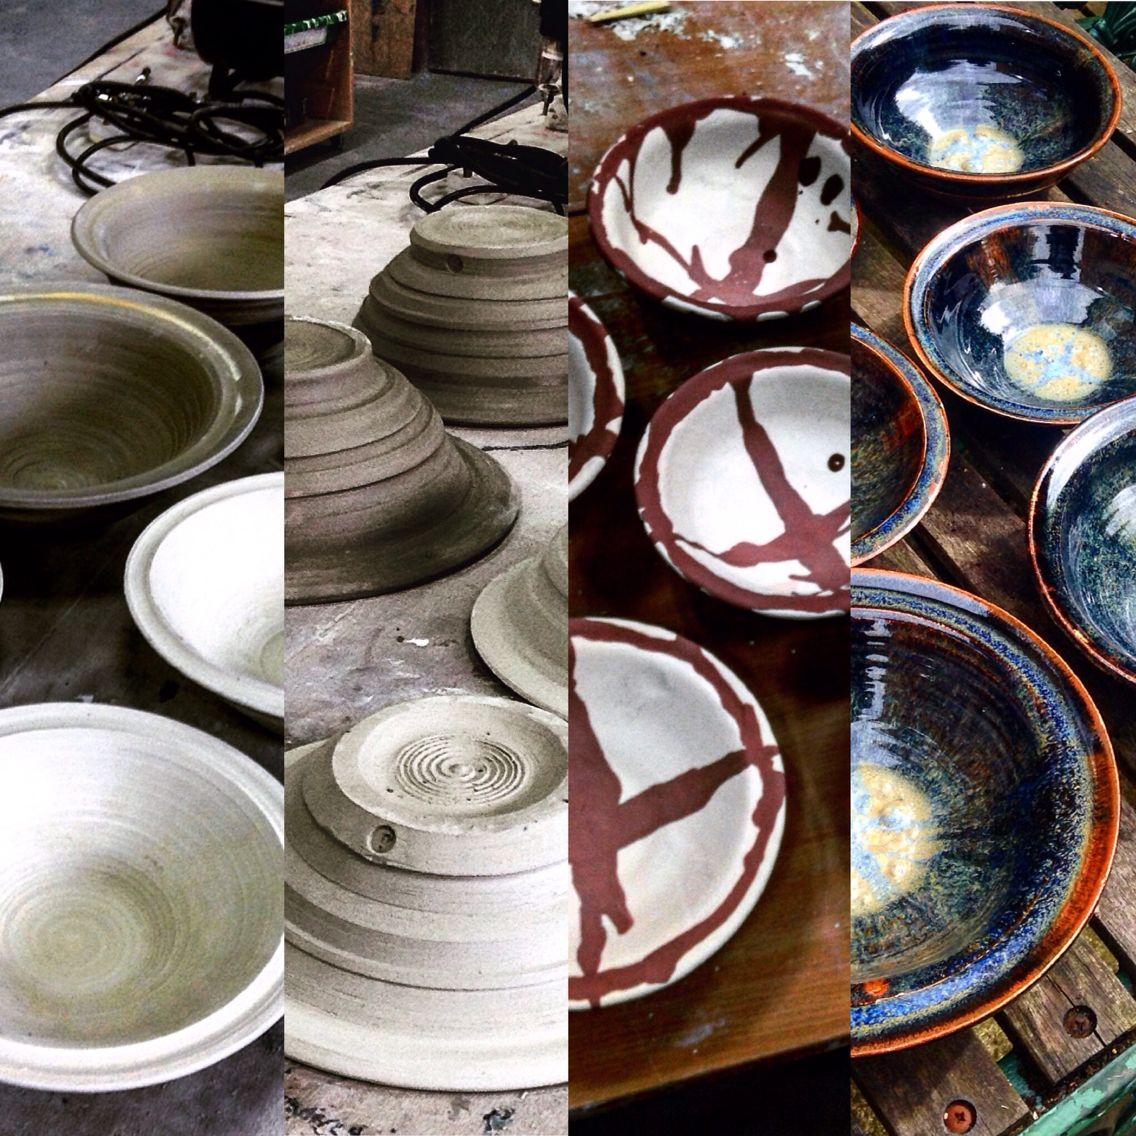 Stone wear bowls in process - Joshua Charles